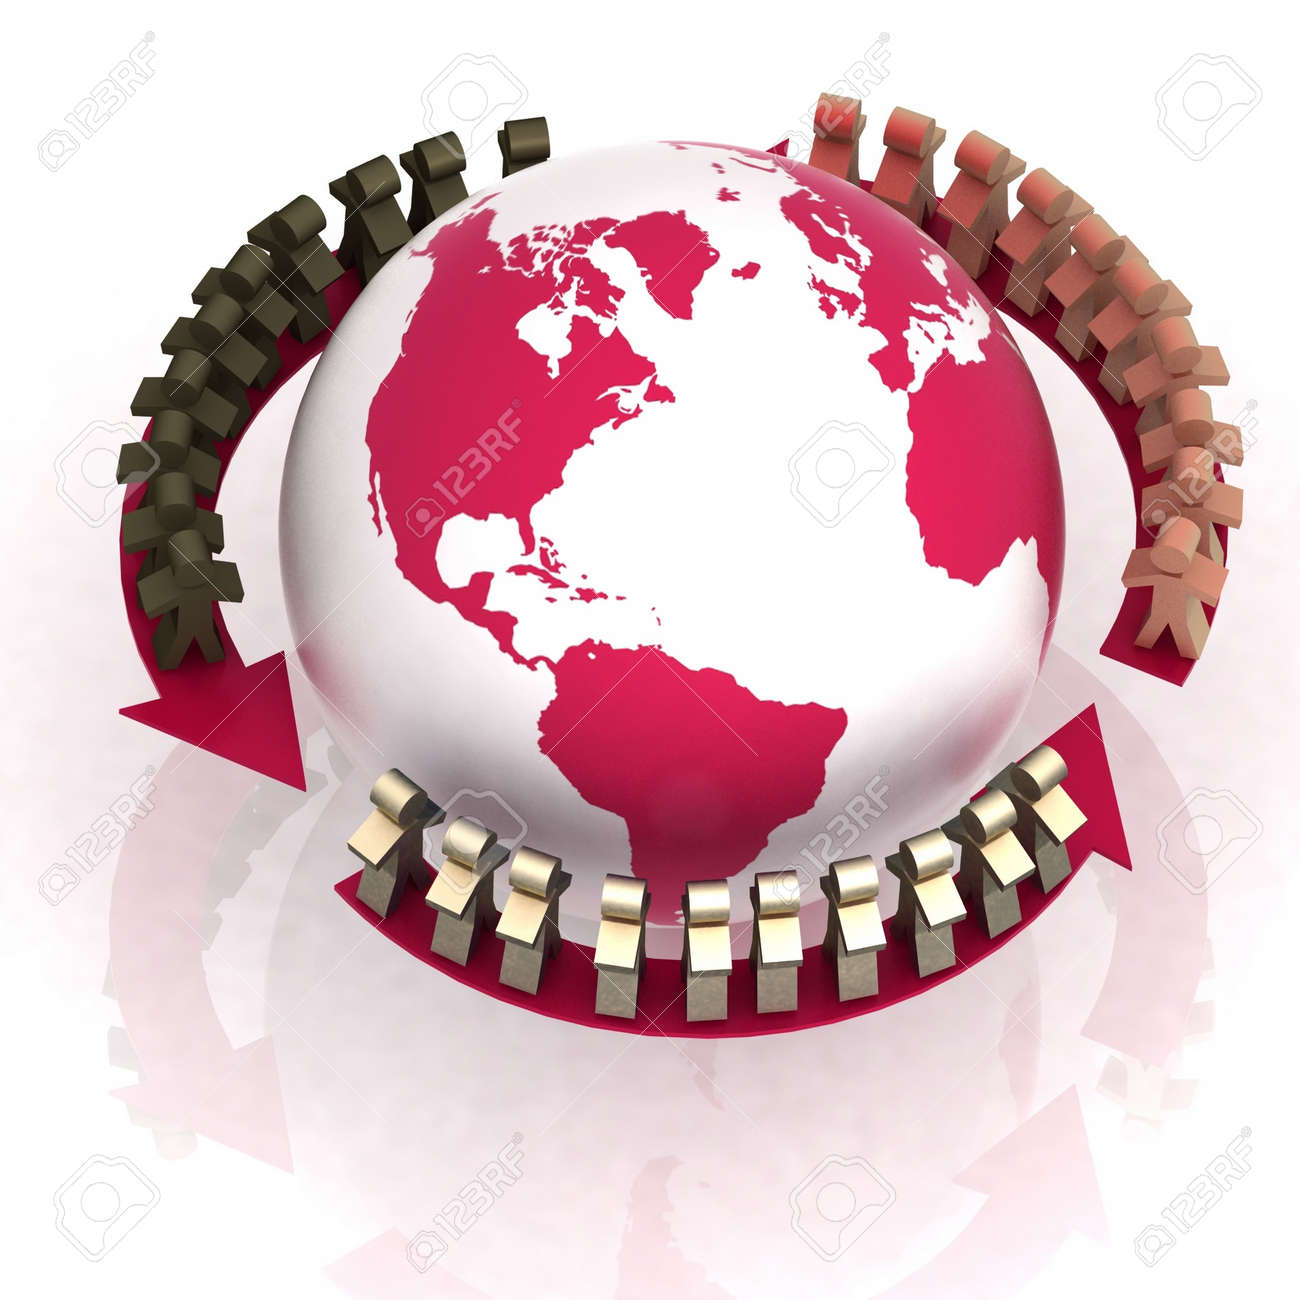 conception of world partner concord Stock Photo - 12050833